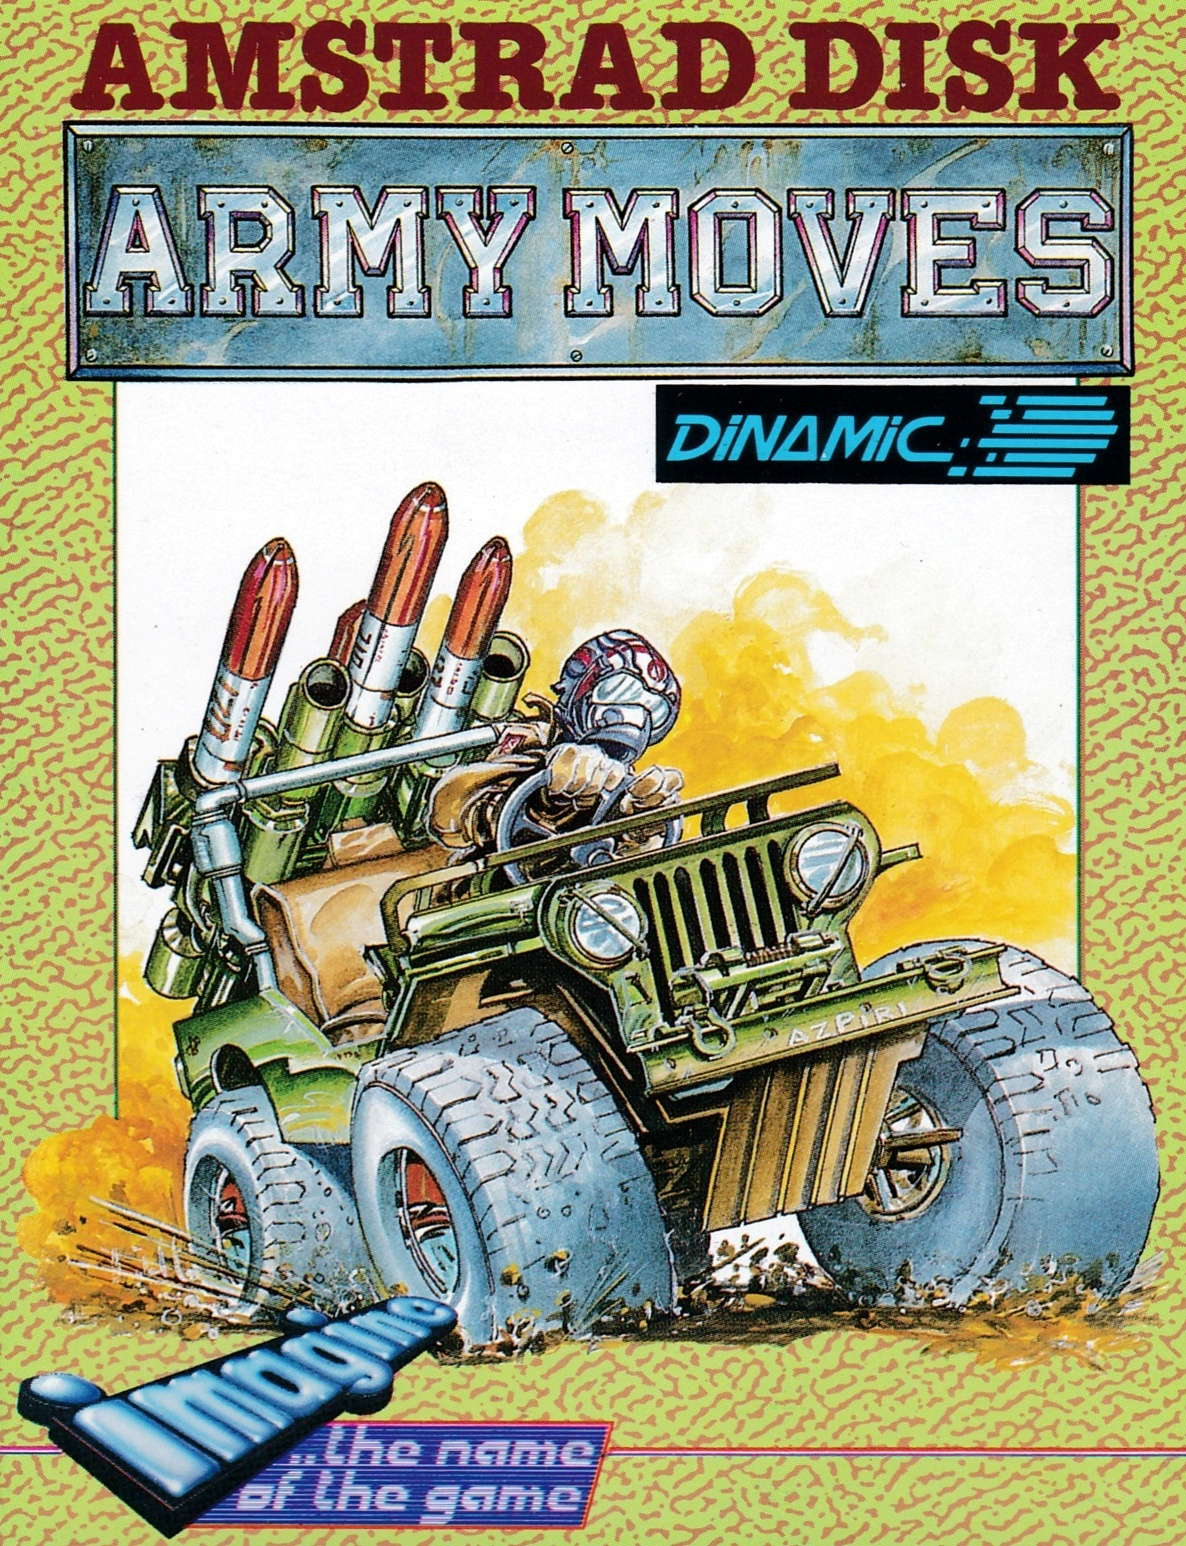 Army moves by Dinamic on Amstrad CPC (1986)